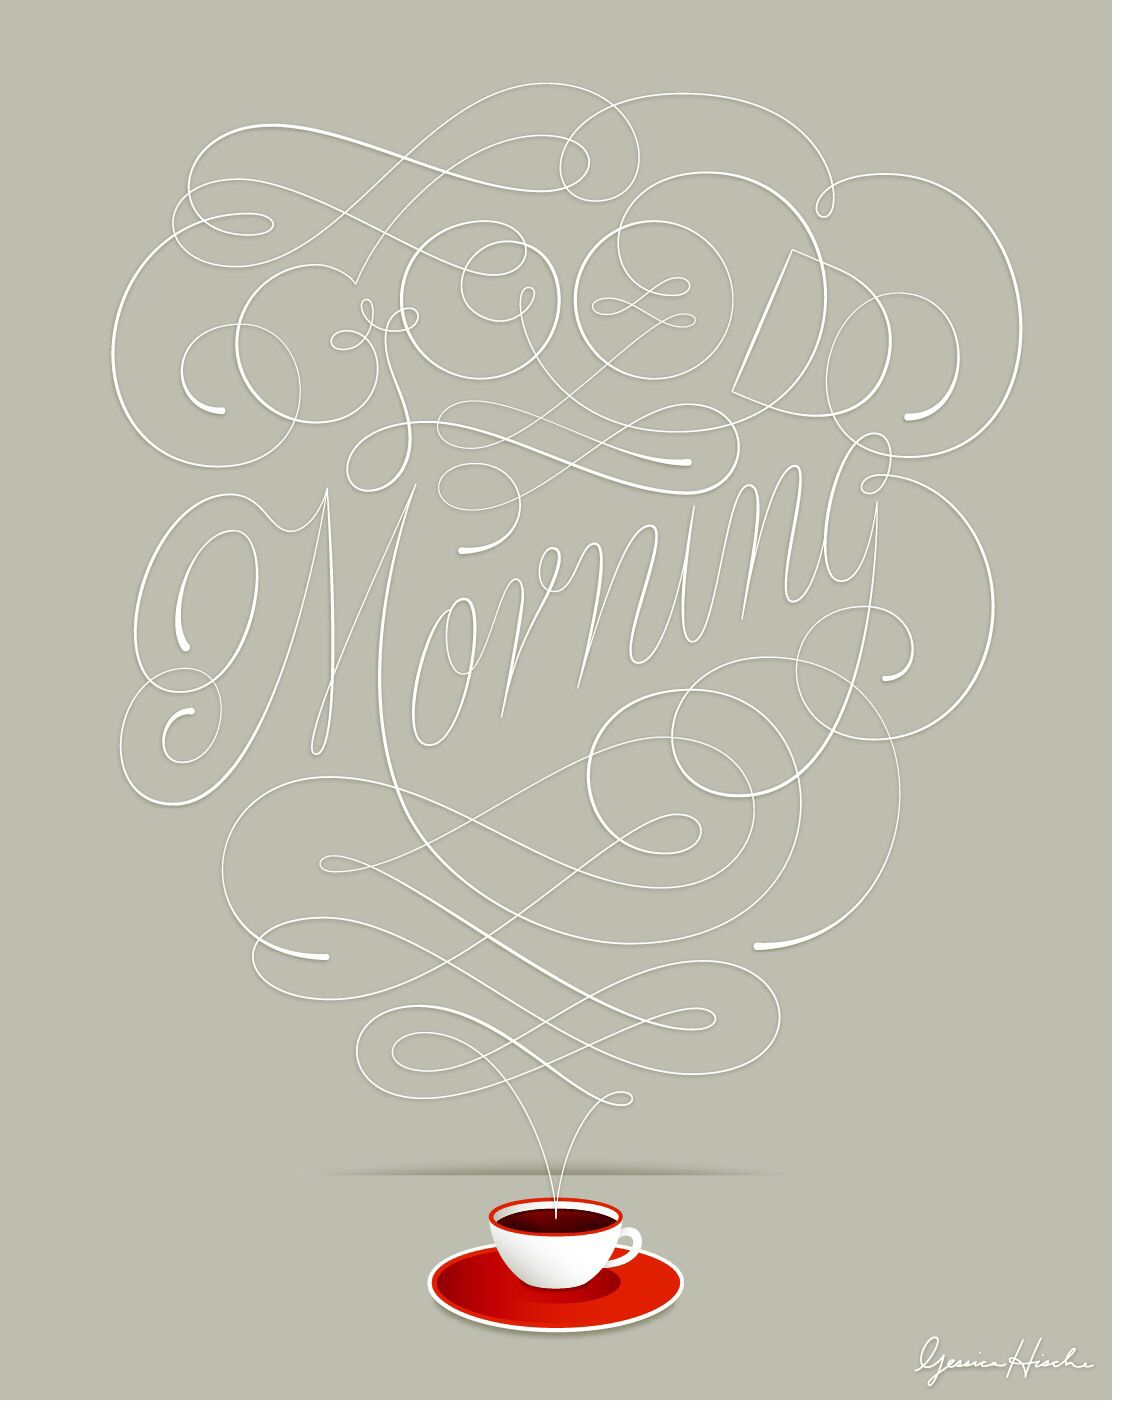 ... by Jessica Hische | Typography, Calligraphy, and Quotes | Pin